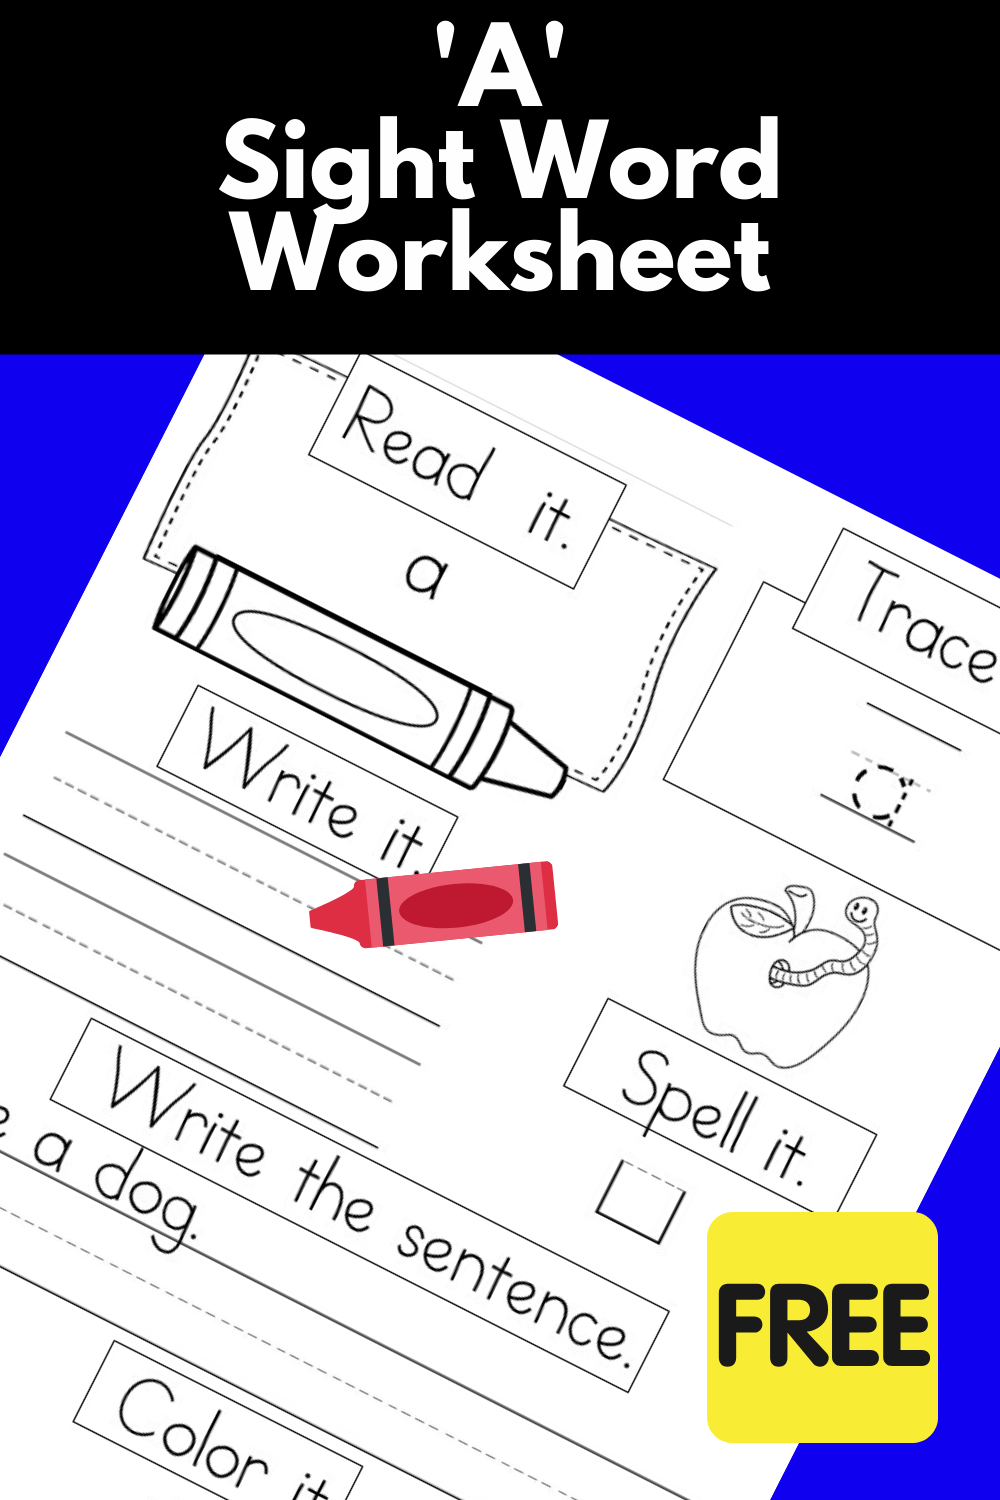 A Sight Word Worksheet Title